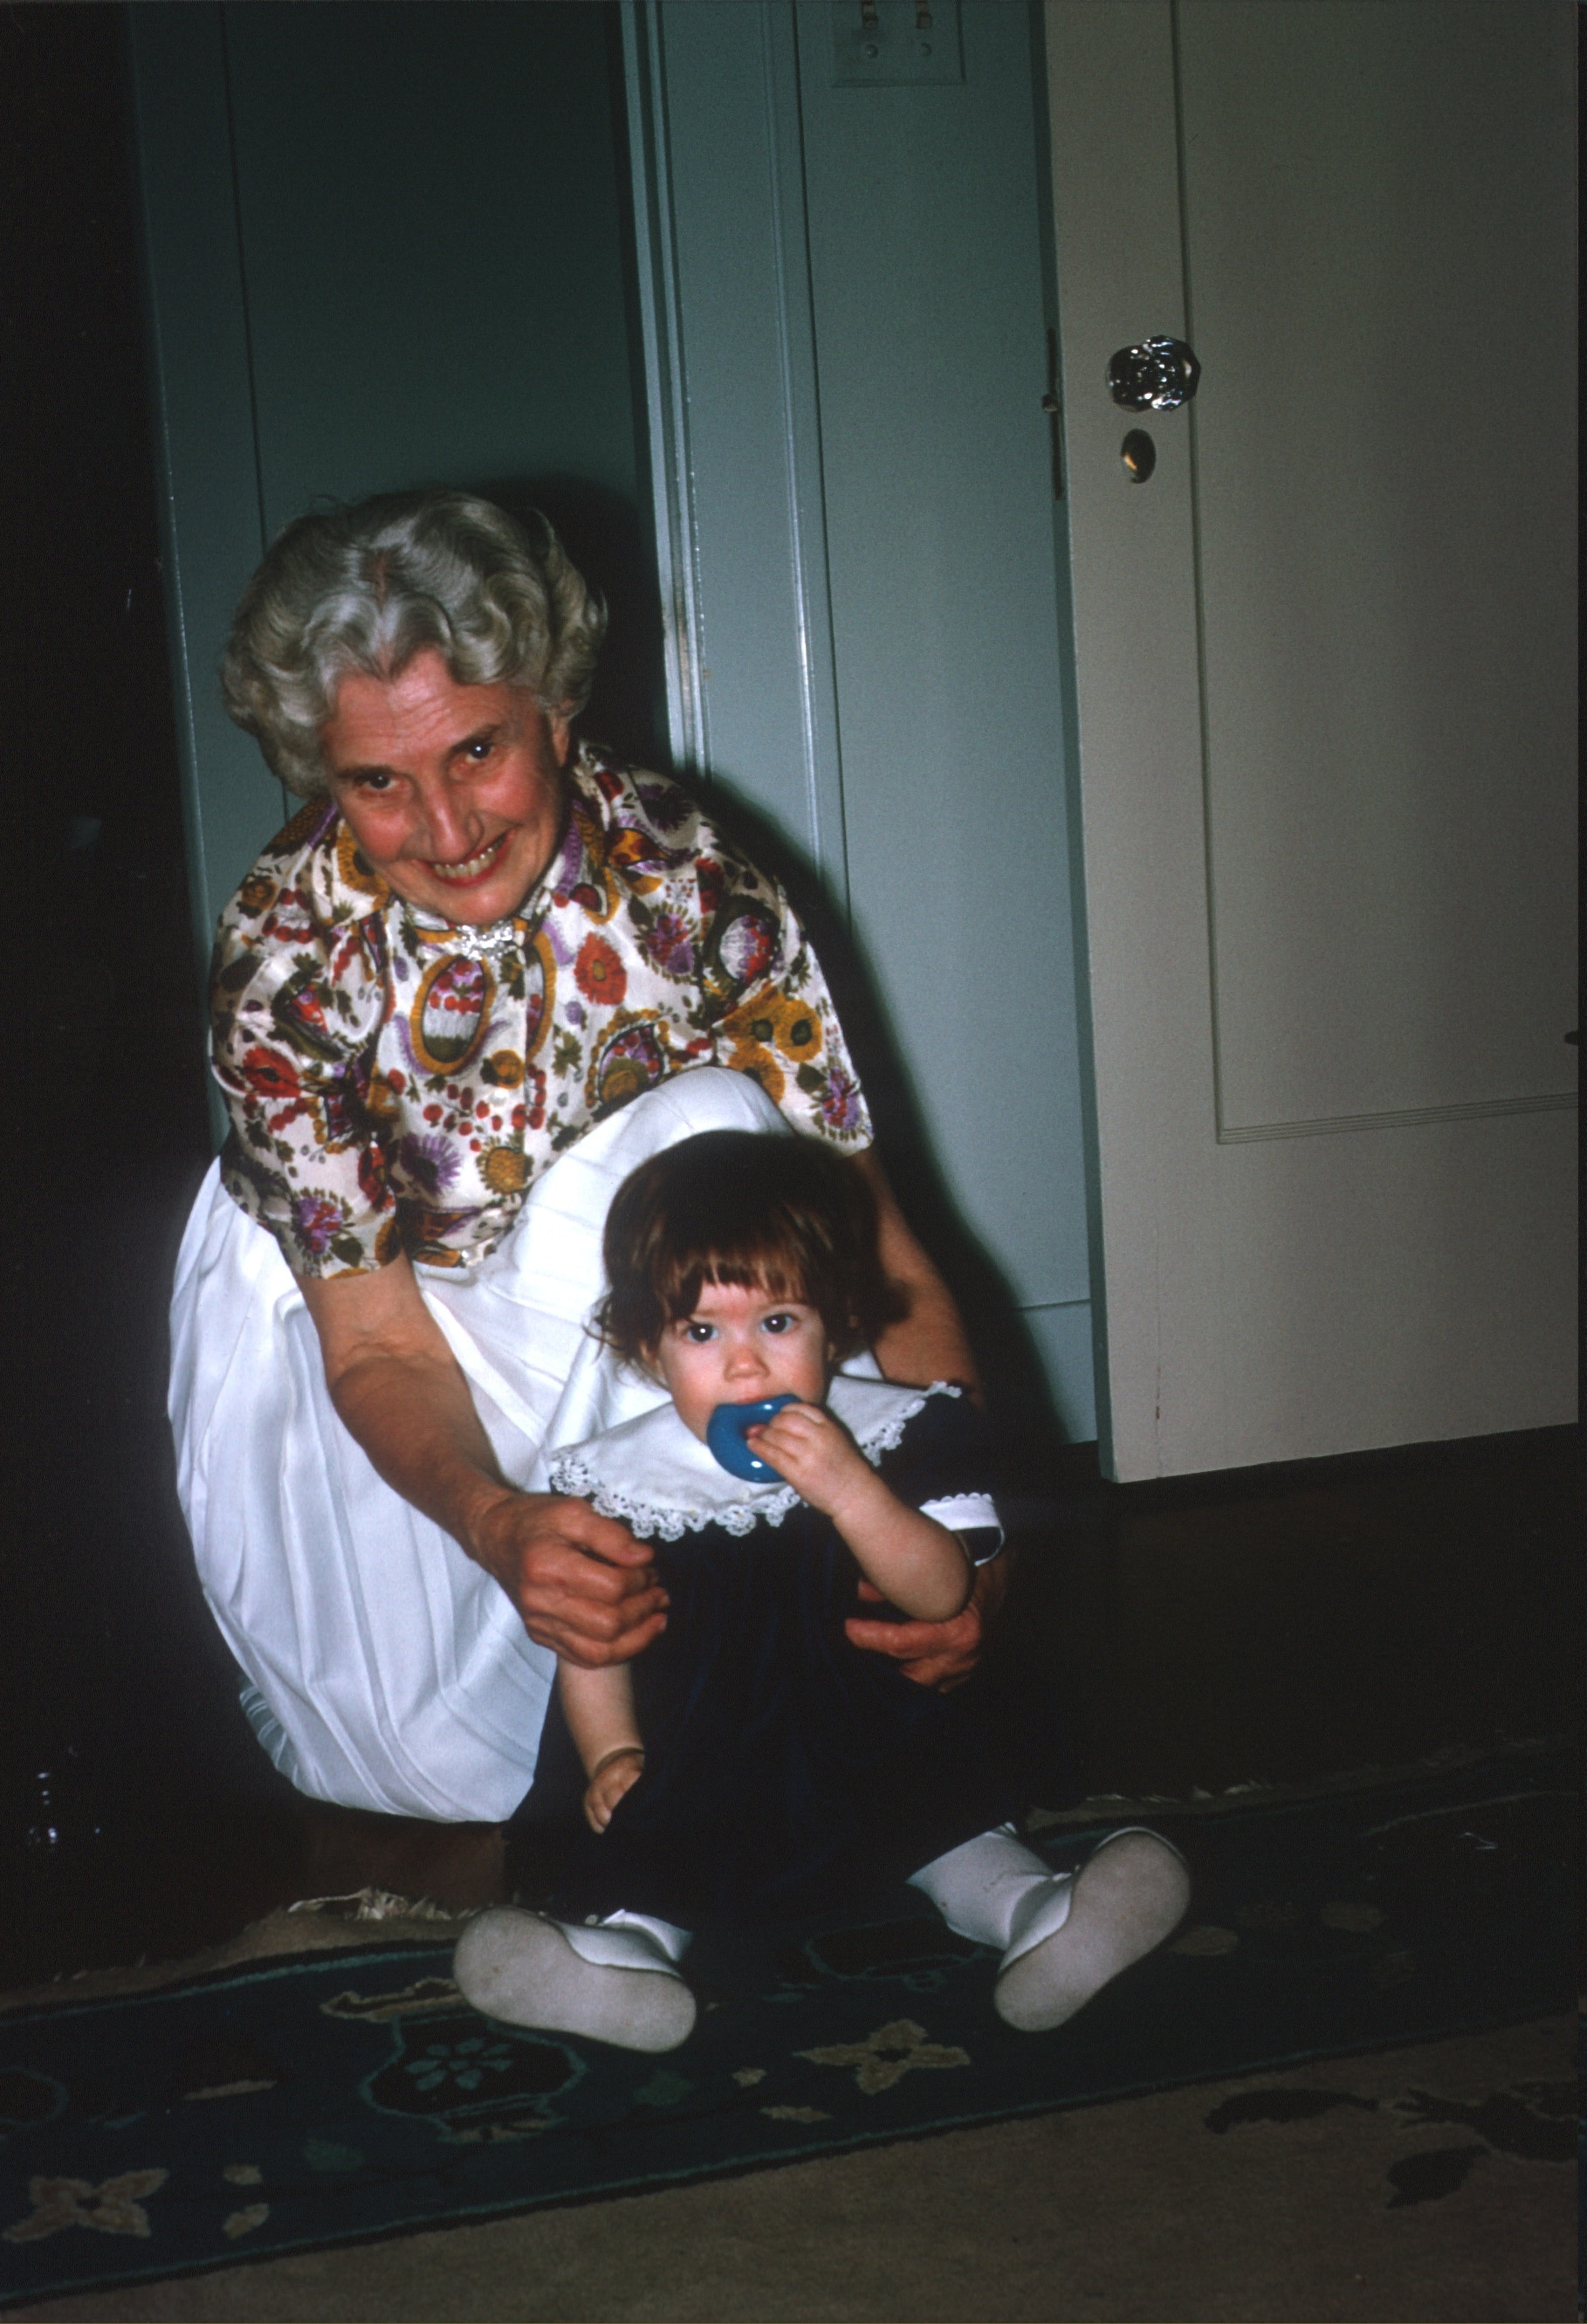 Older woman and toddler girl